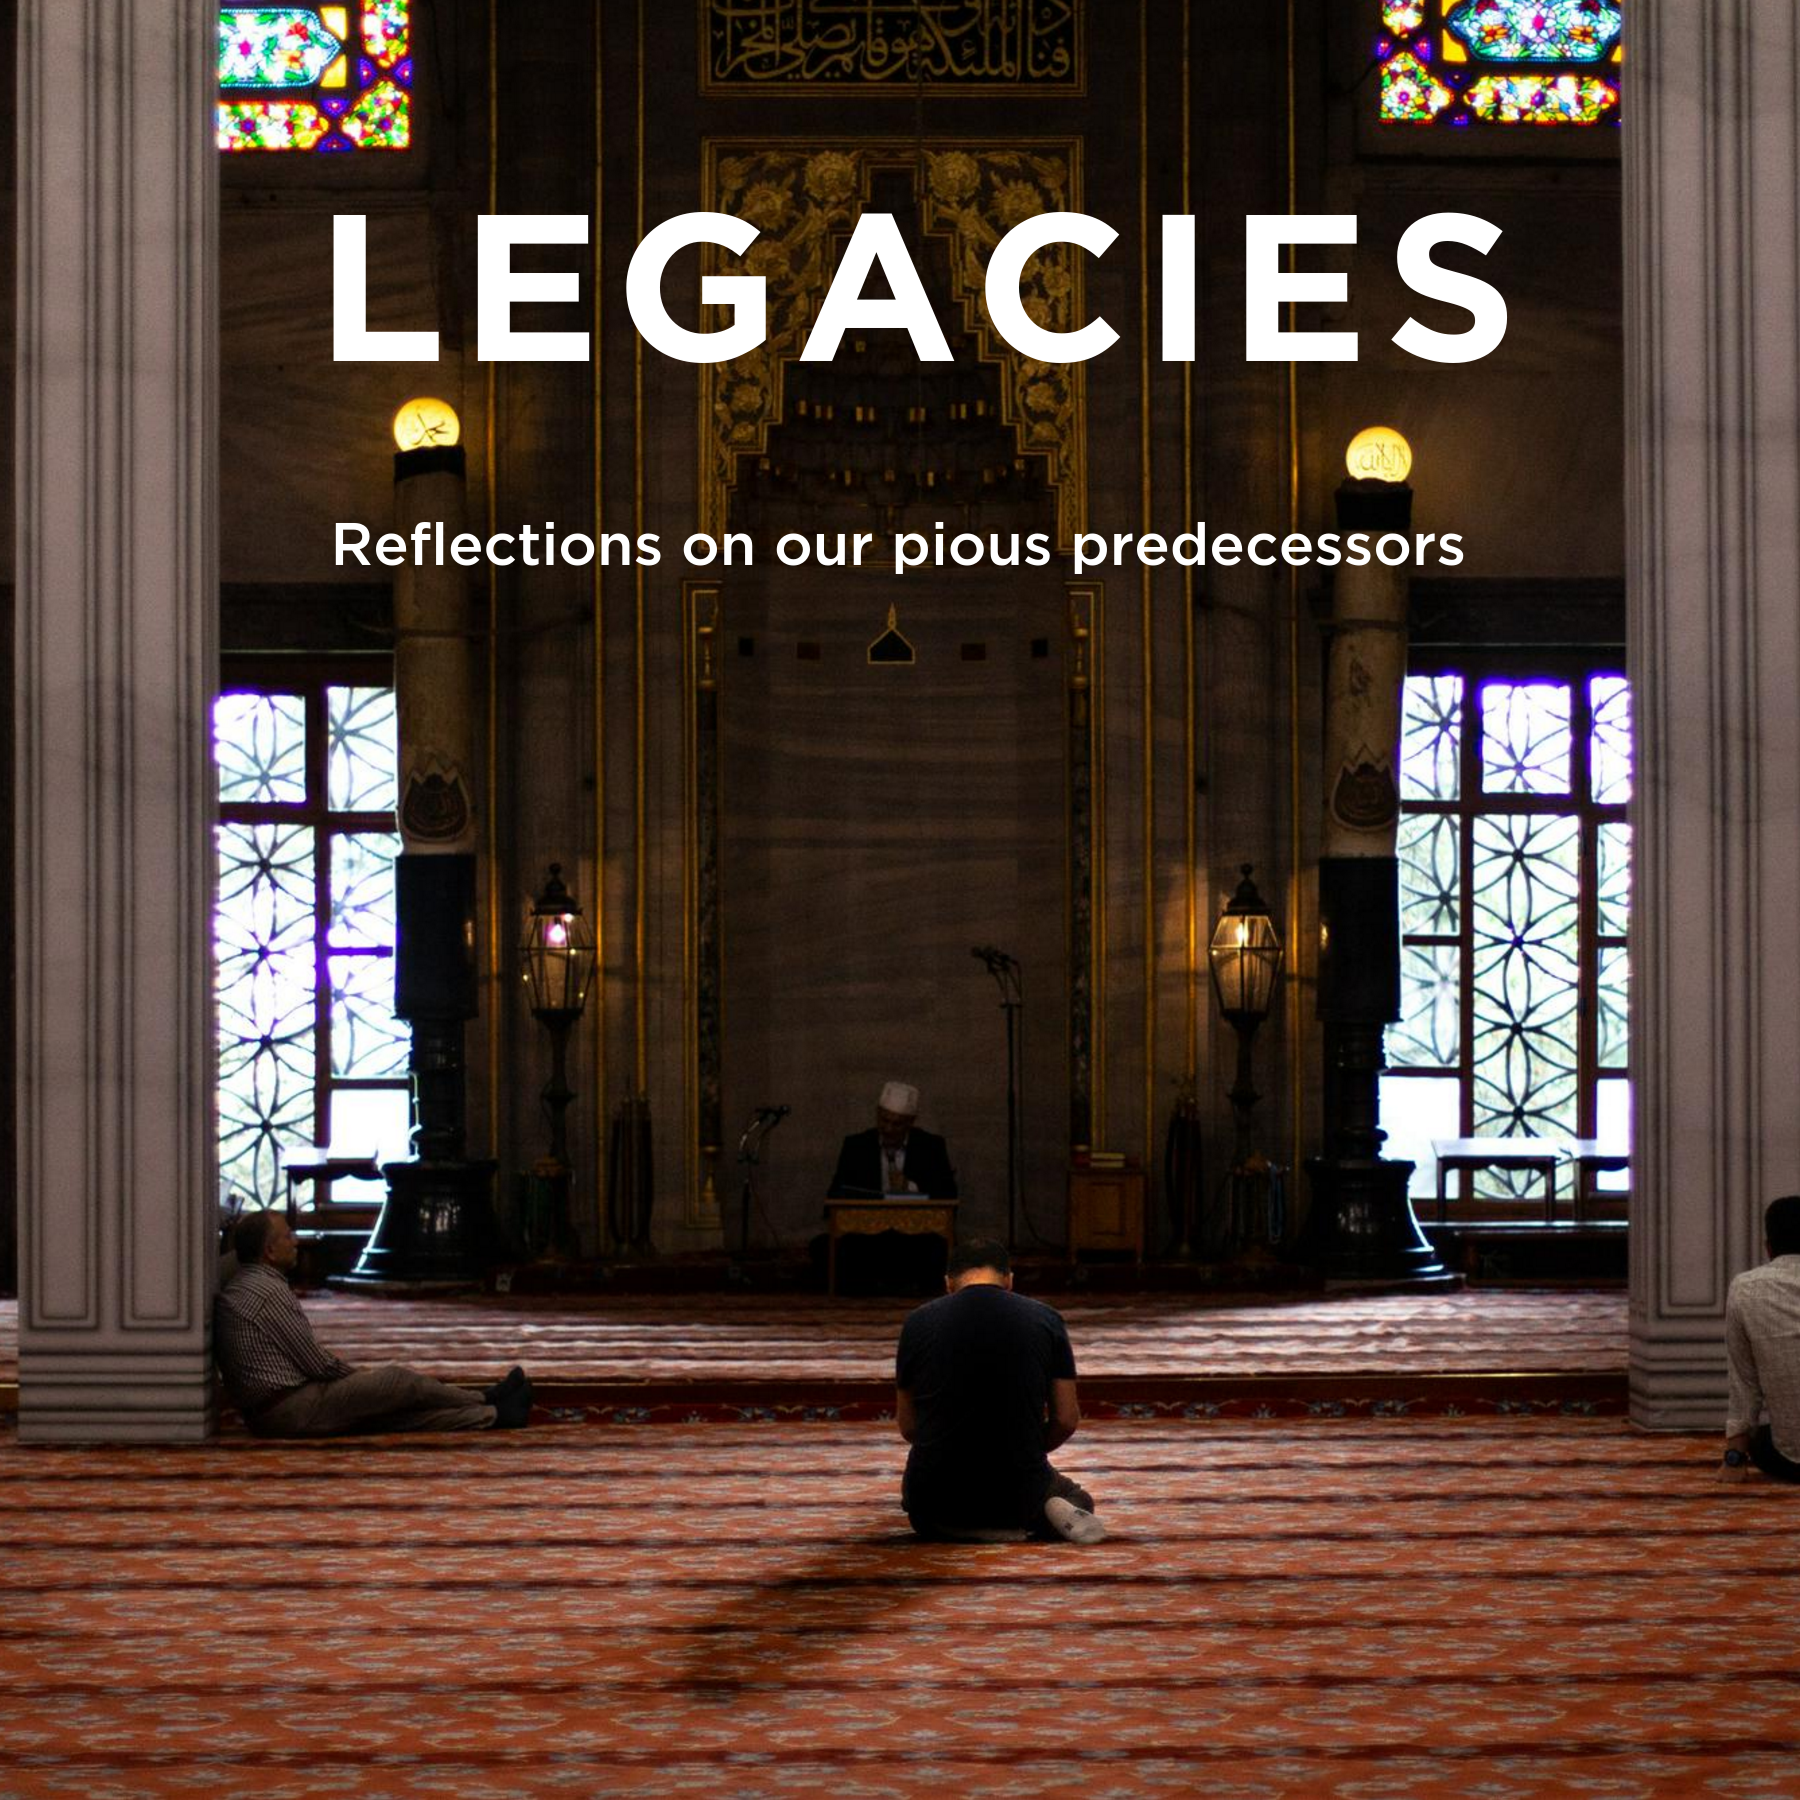 Legacies – Hussain RA, Muharram, & Our History; Reflections on the Tragedy of Karbala